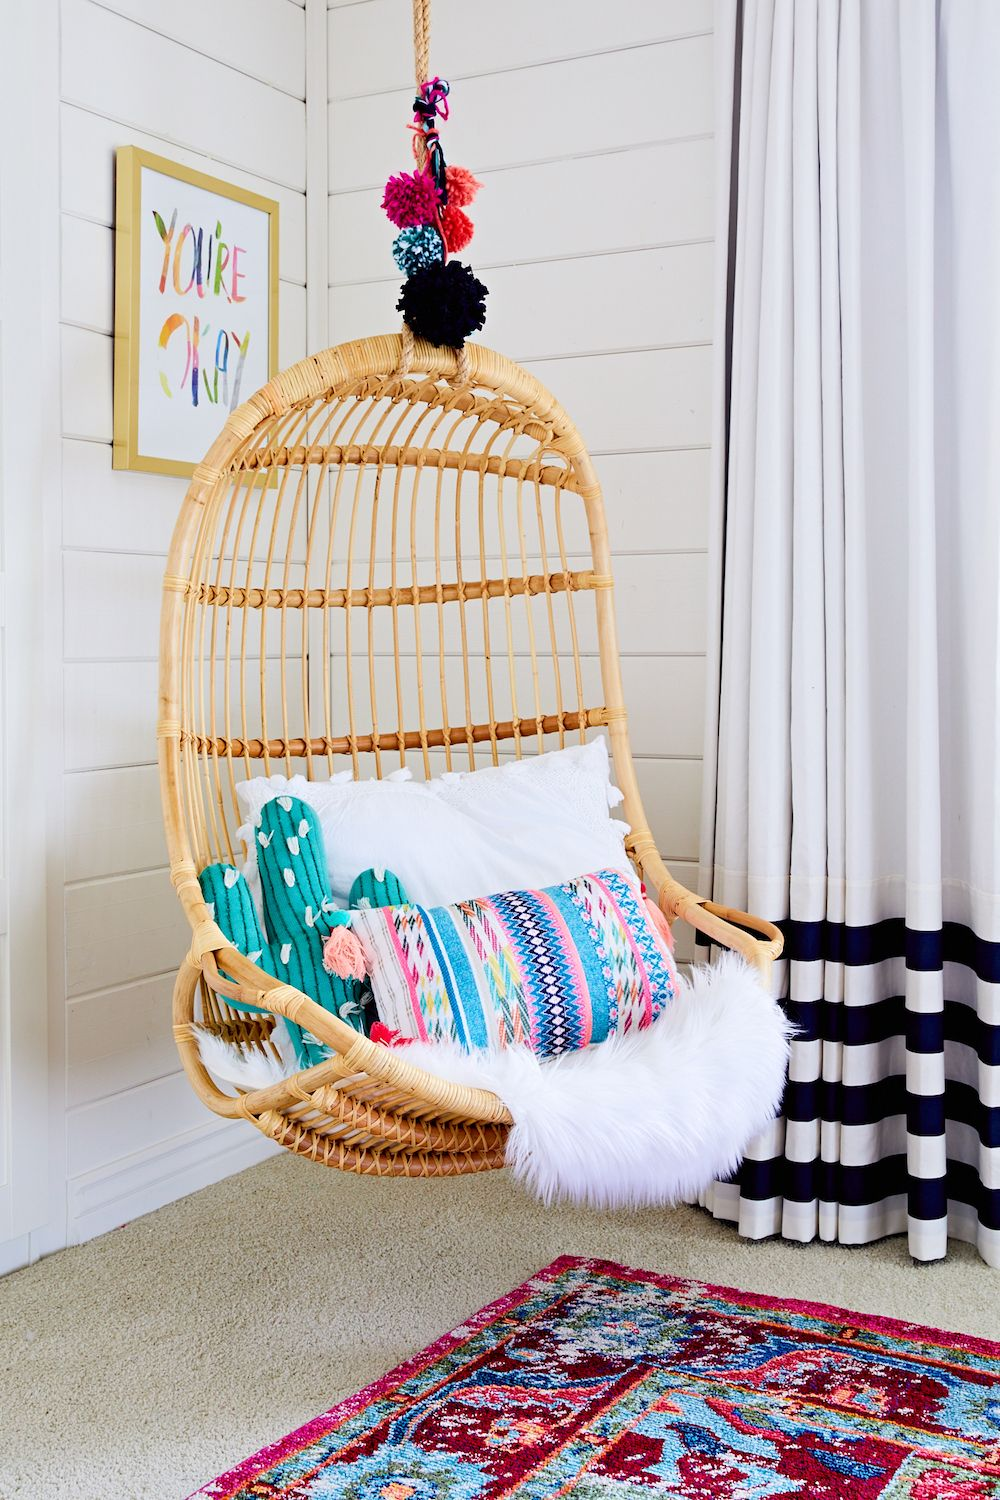 Trendspotting Hanging Chairs Are Swinging Into Kids Design Swing Swing Swing Kids Bedroom Boho Room Room Decor